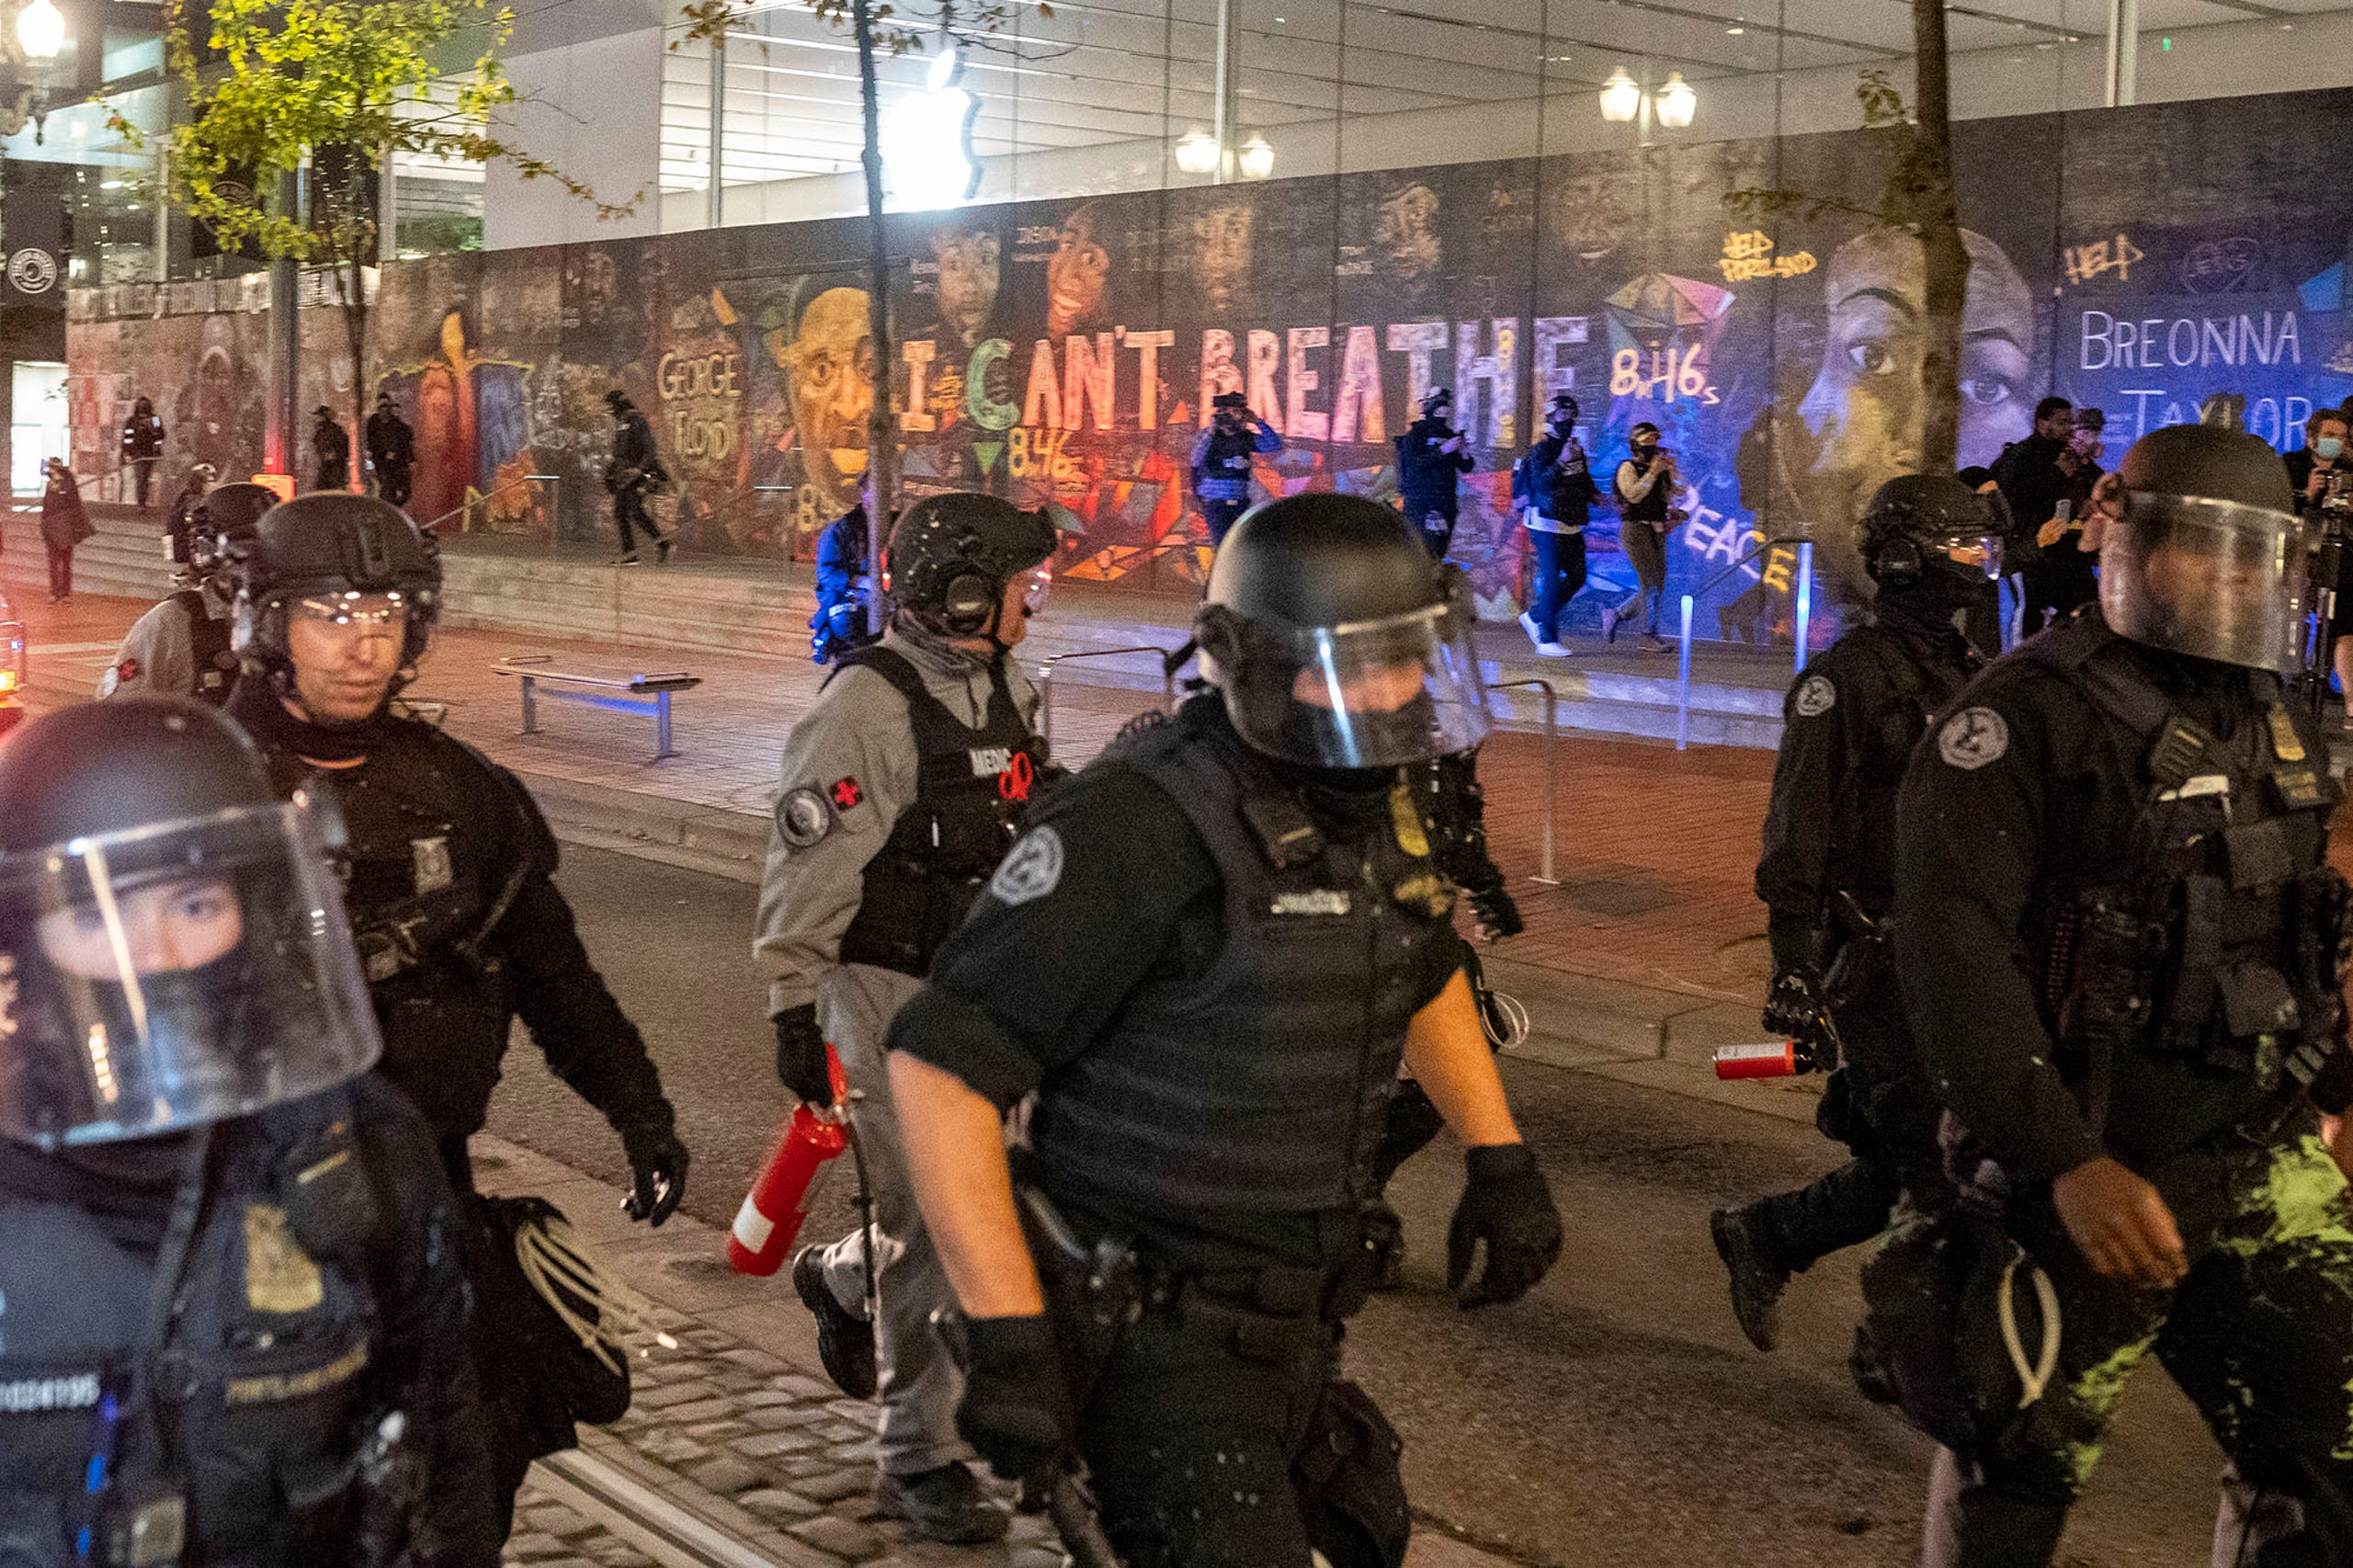 Portland Protests Prompt Tear Gas Rubber Bullets From Police